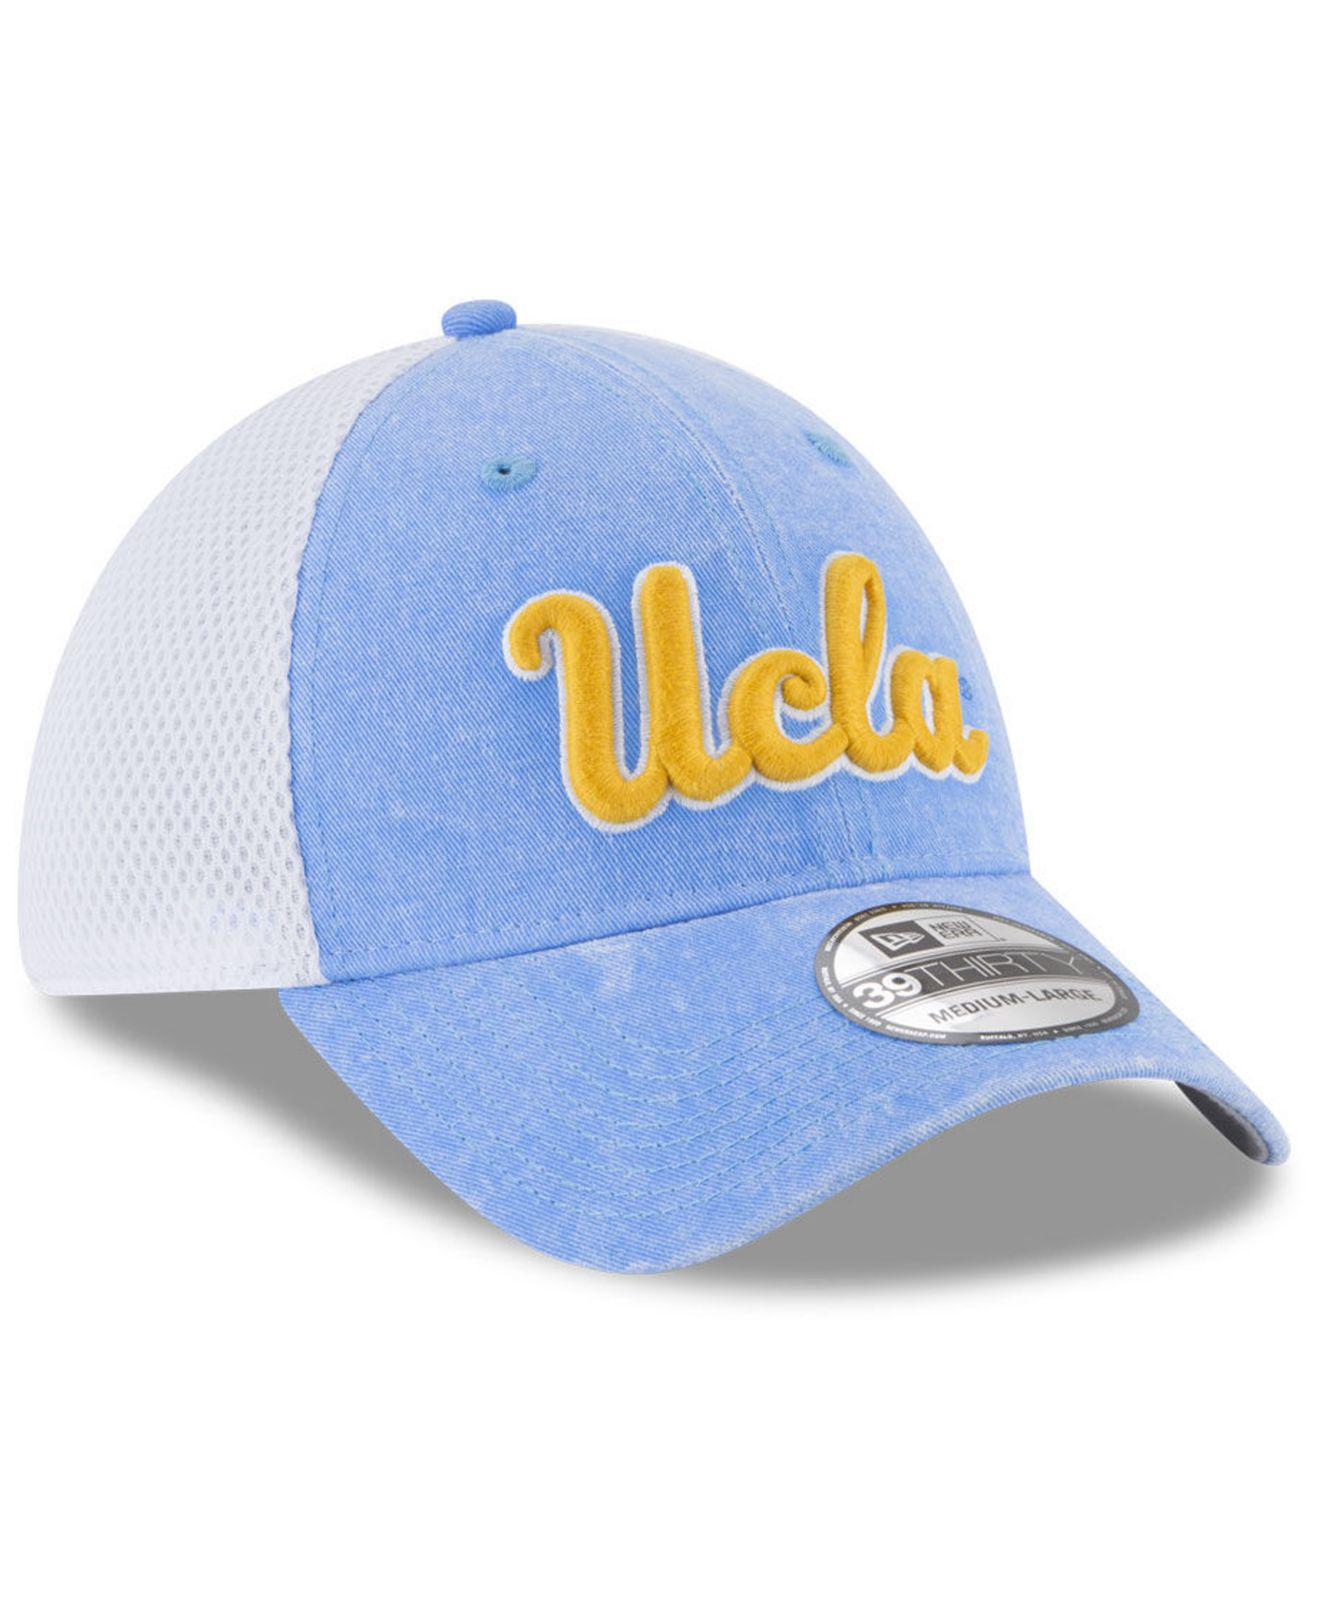 quality design c4640 a0af4 ... italy ucla bruins washed neo 39thirty cap for men lyst. view fullscreen  a18f1 305c3